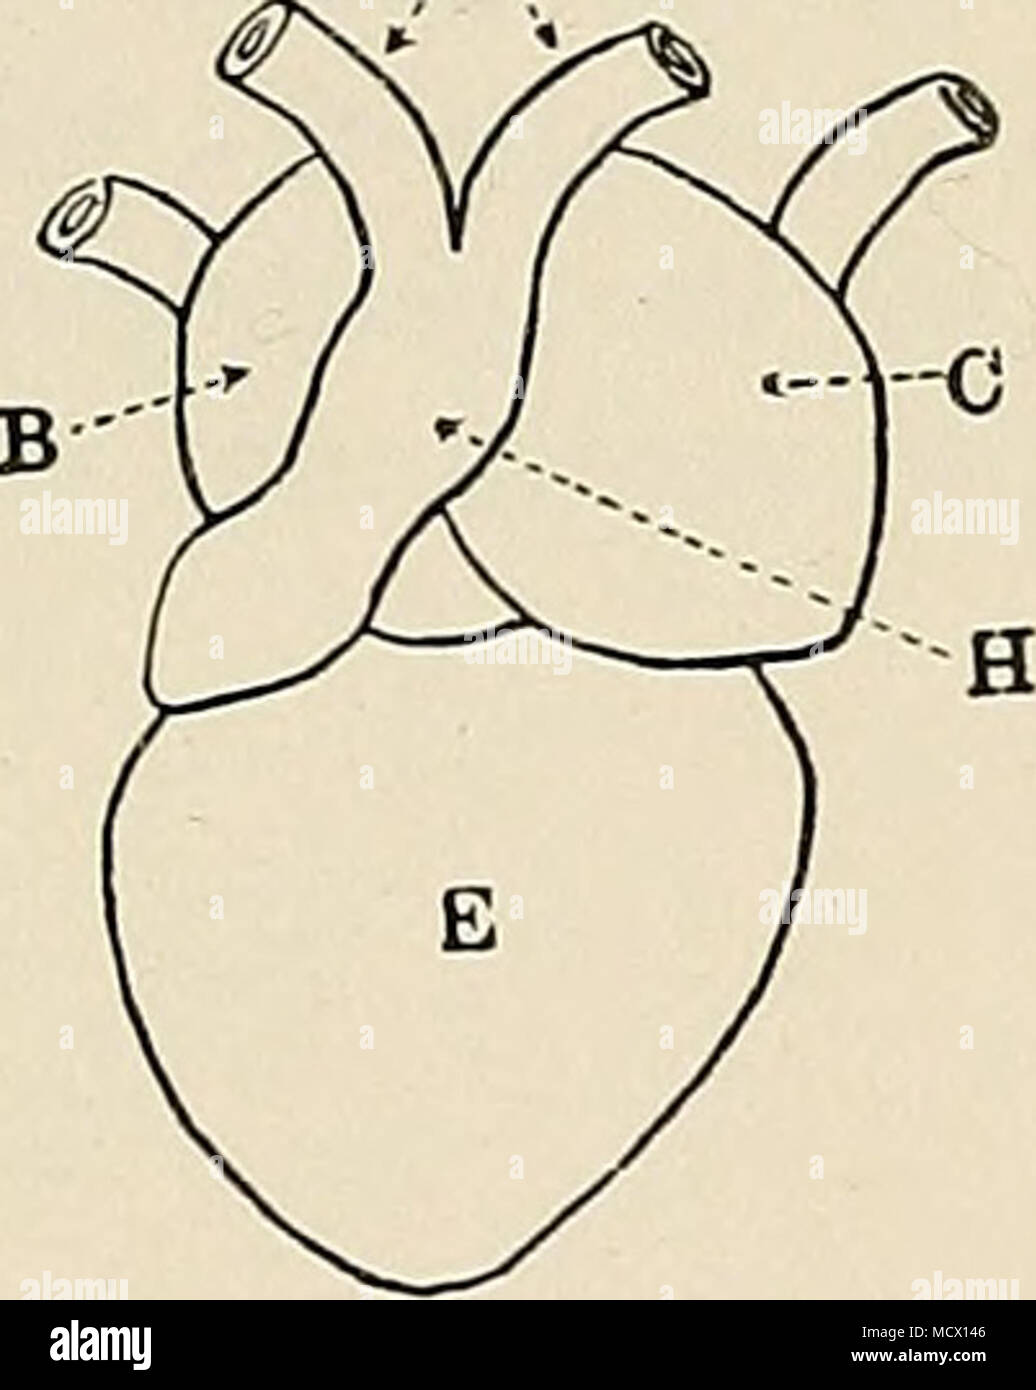 b\'ig. 12. The gross anatomy of frog\'8 heart. (Ventral view after ...